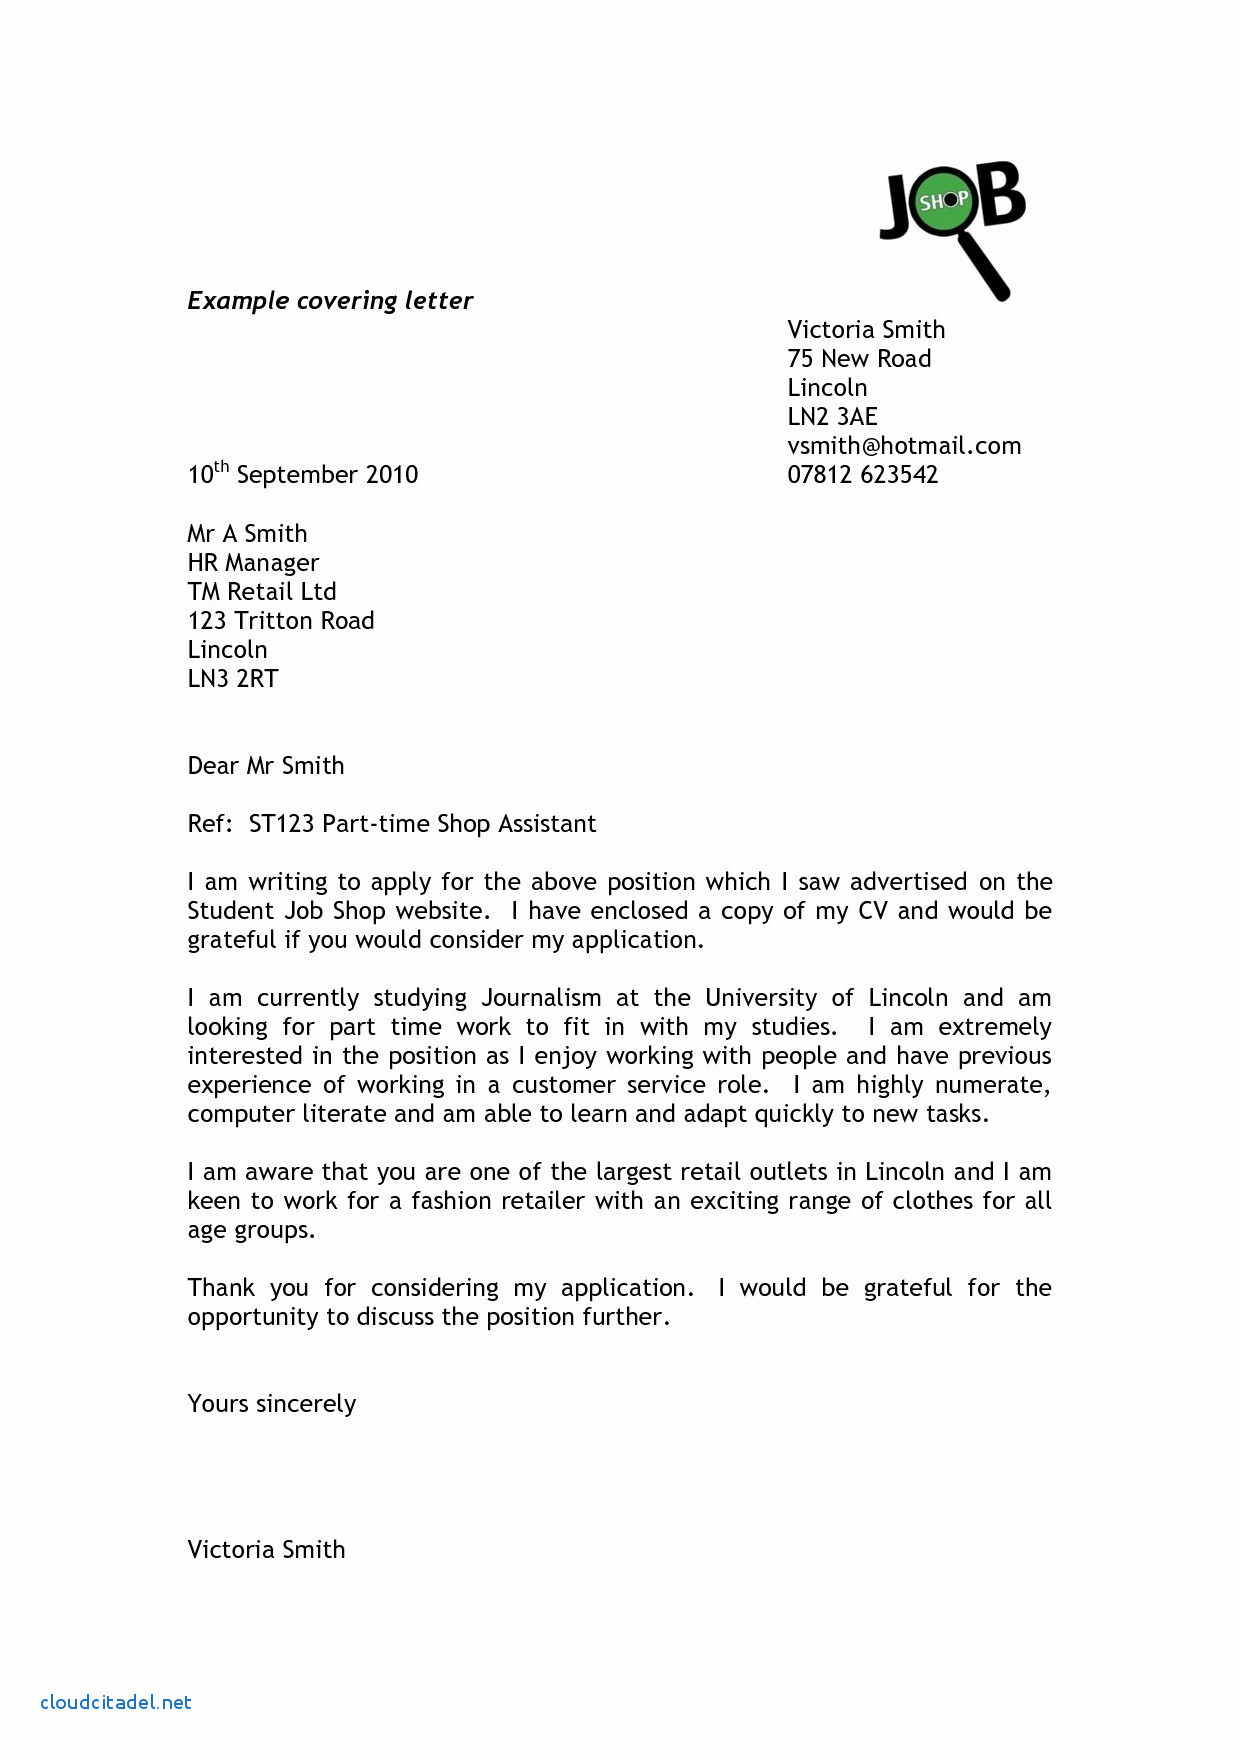 Employment Verification Letter Sample and Template - Inspirational Application Letter for Employment Manager Job Sample